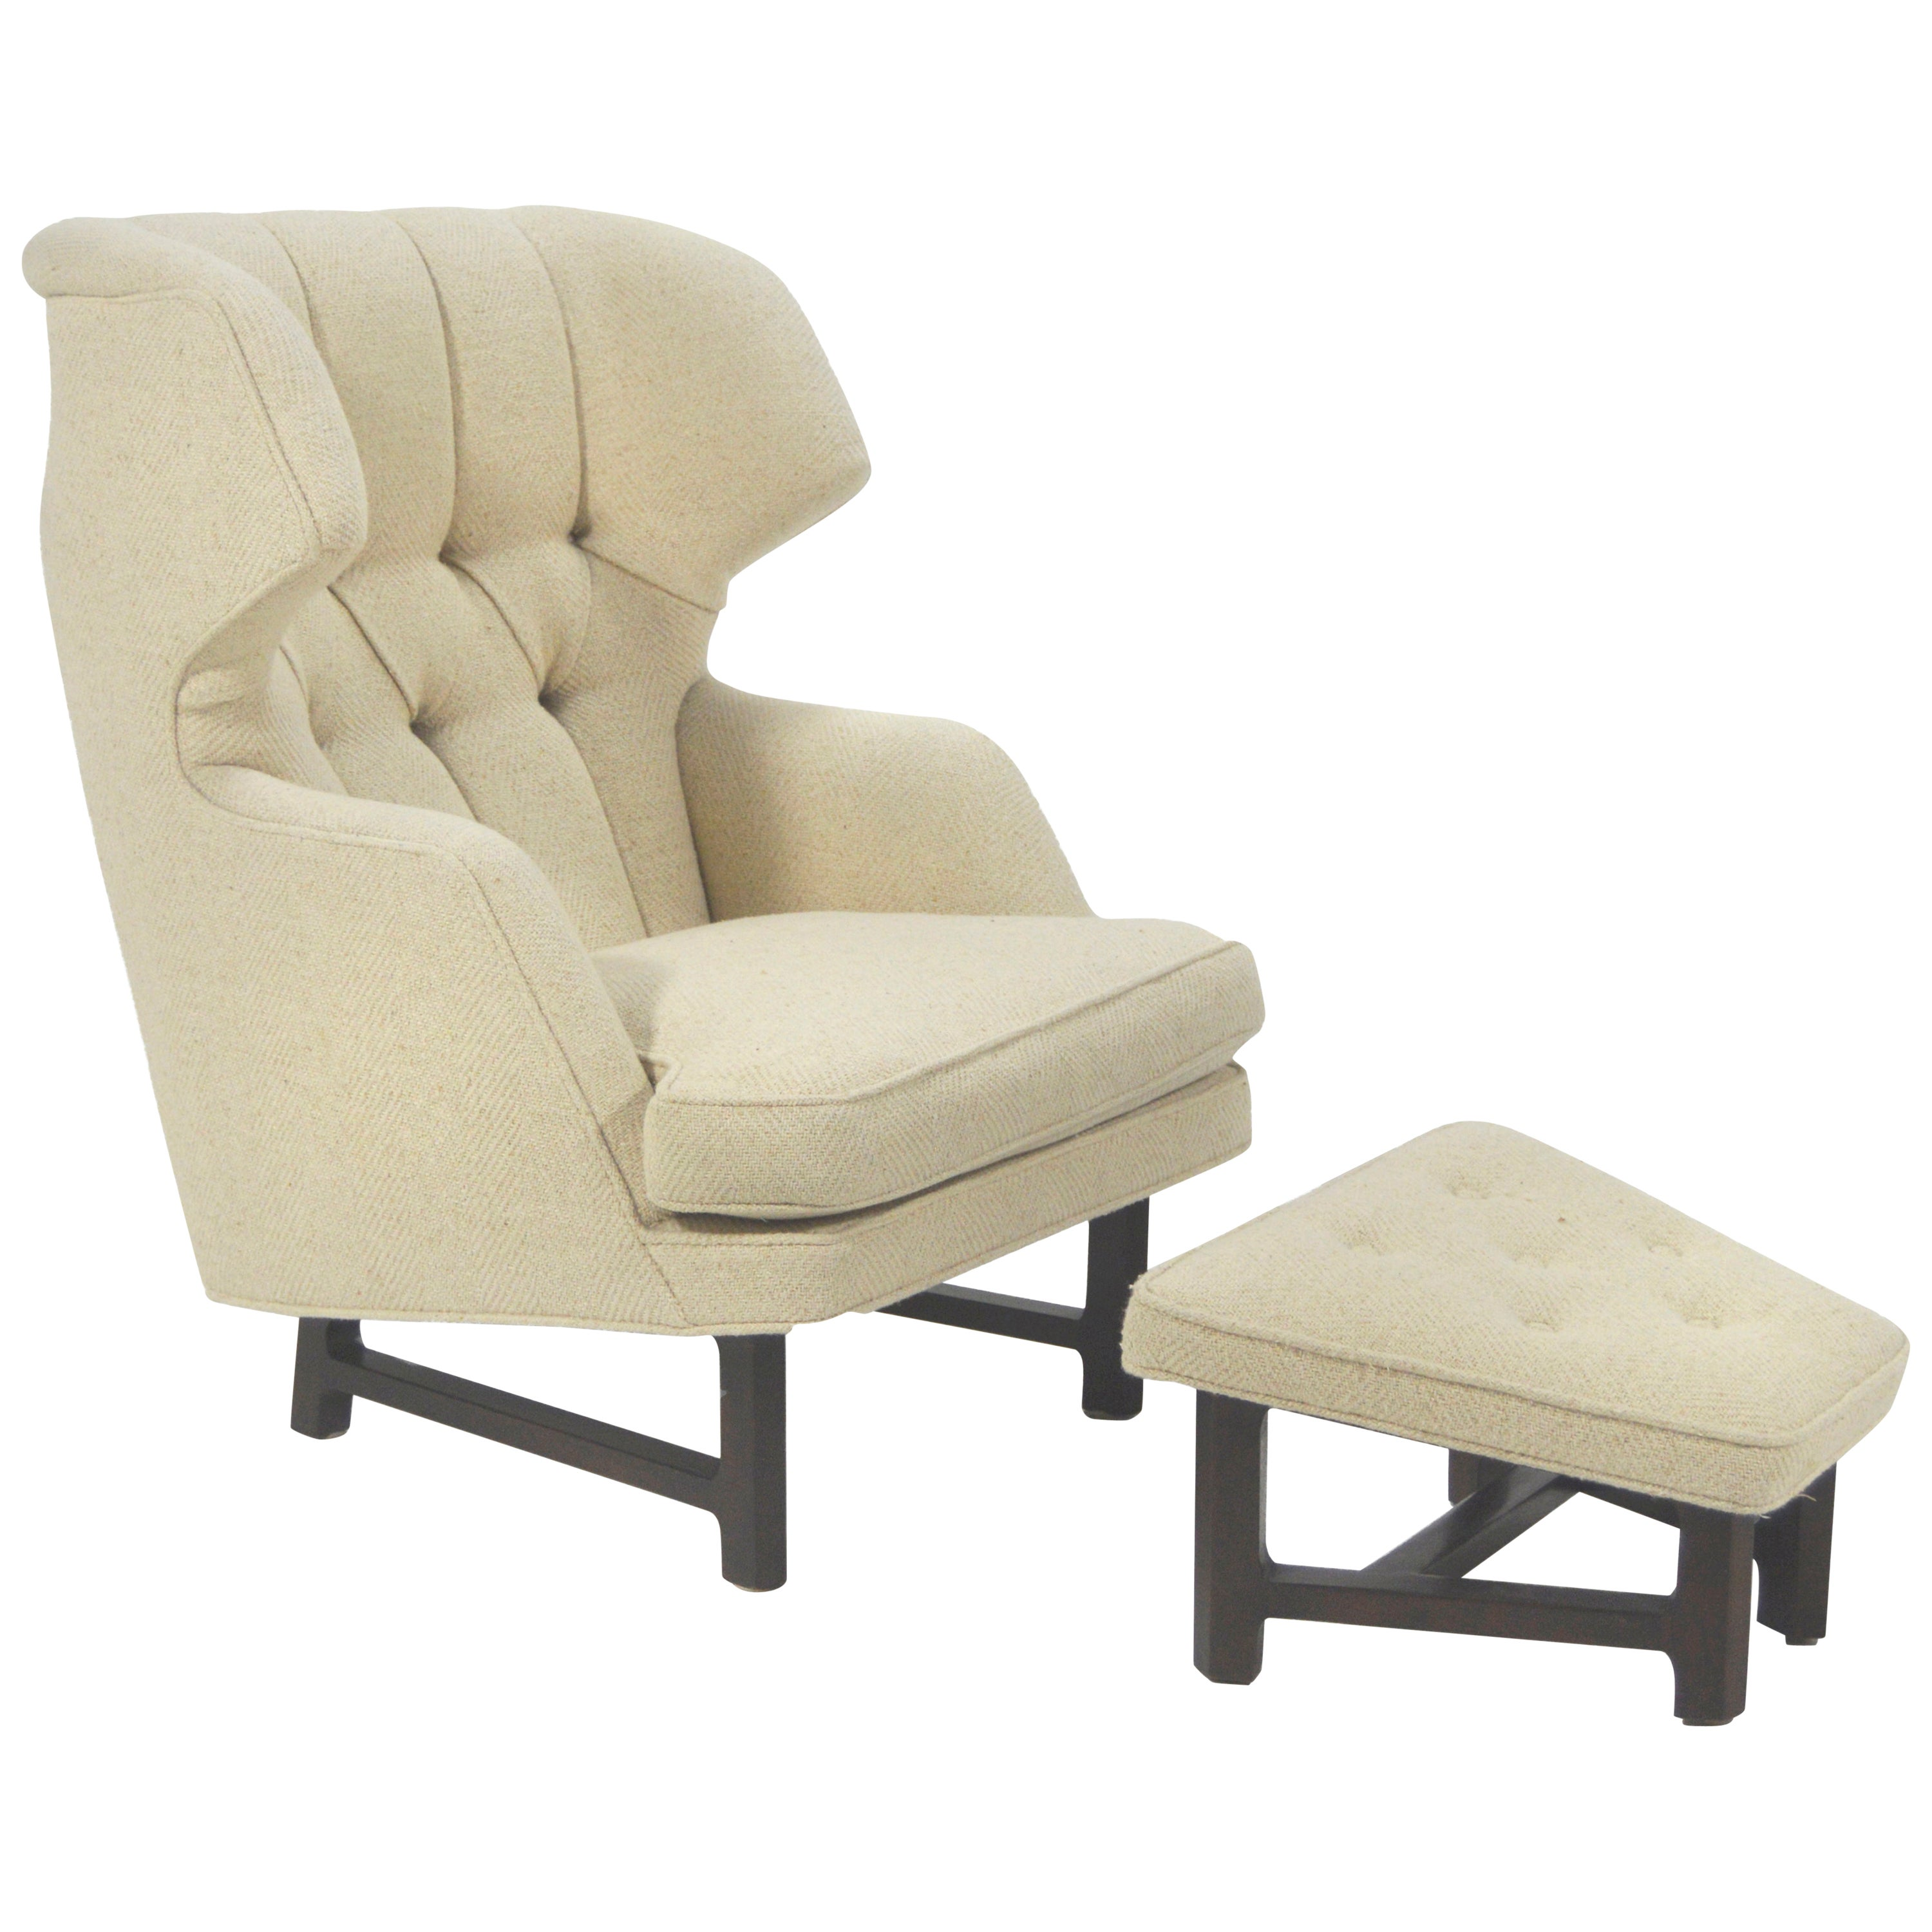 Edward Wormley Model 5761 Janus Wingback Chair and Ottoman